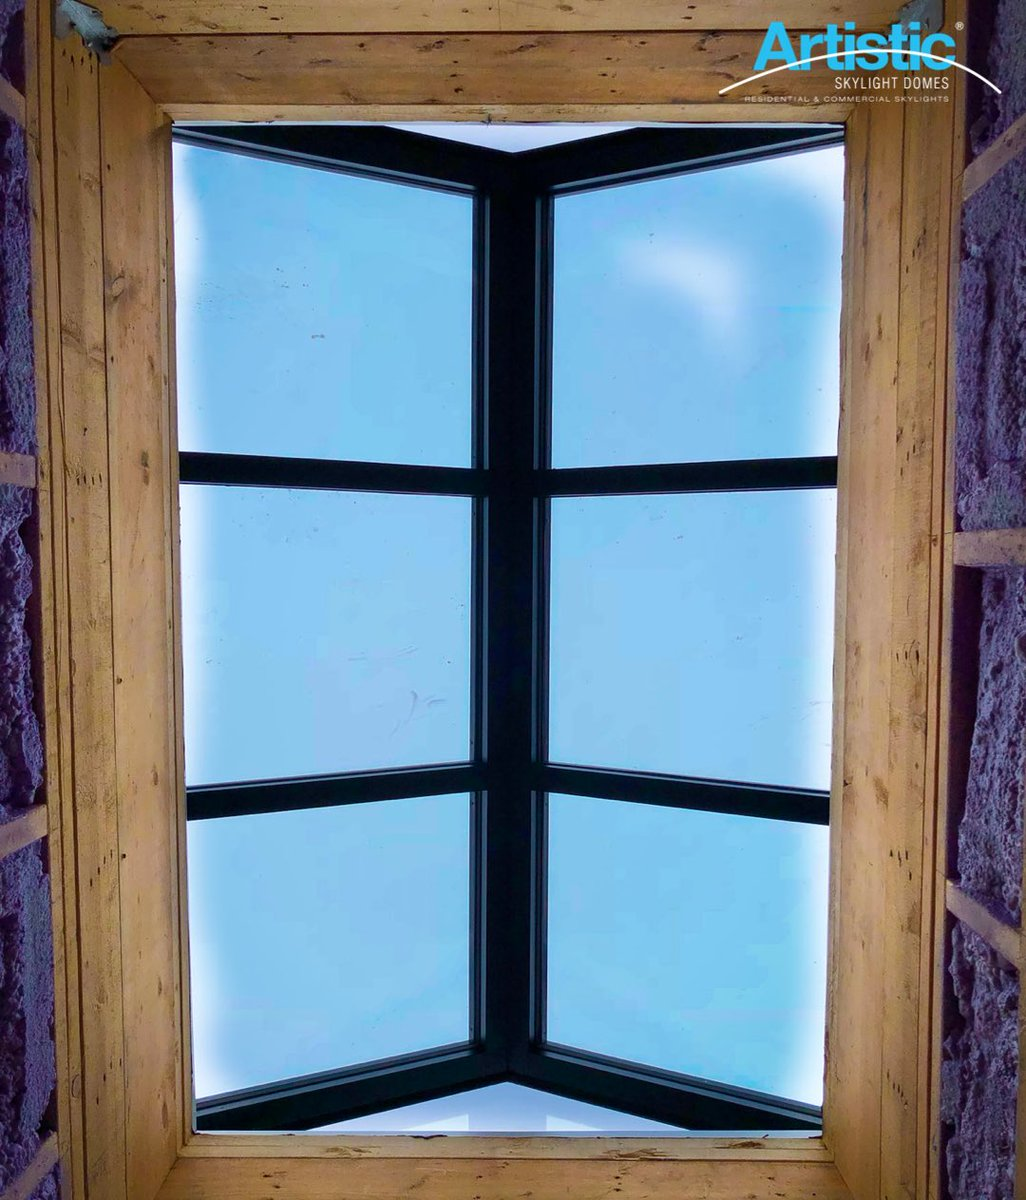 Always looking upwards. We hope you love these views as much as we do. #skylights #skylight #artisticskylight #Construction #toronto #roofing #architecture #design